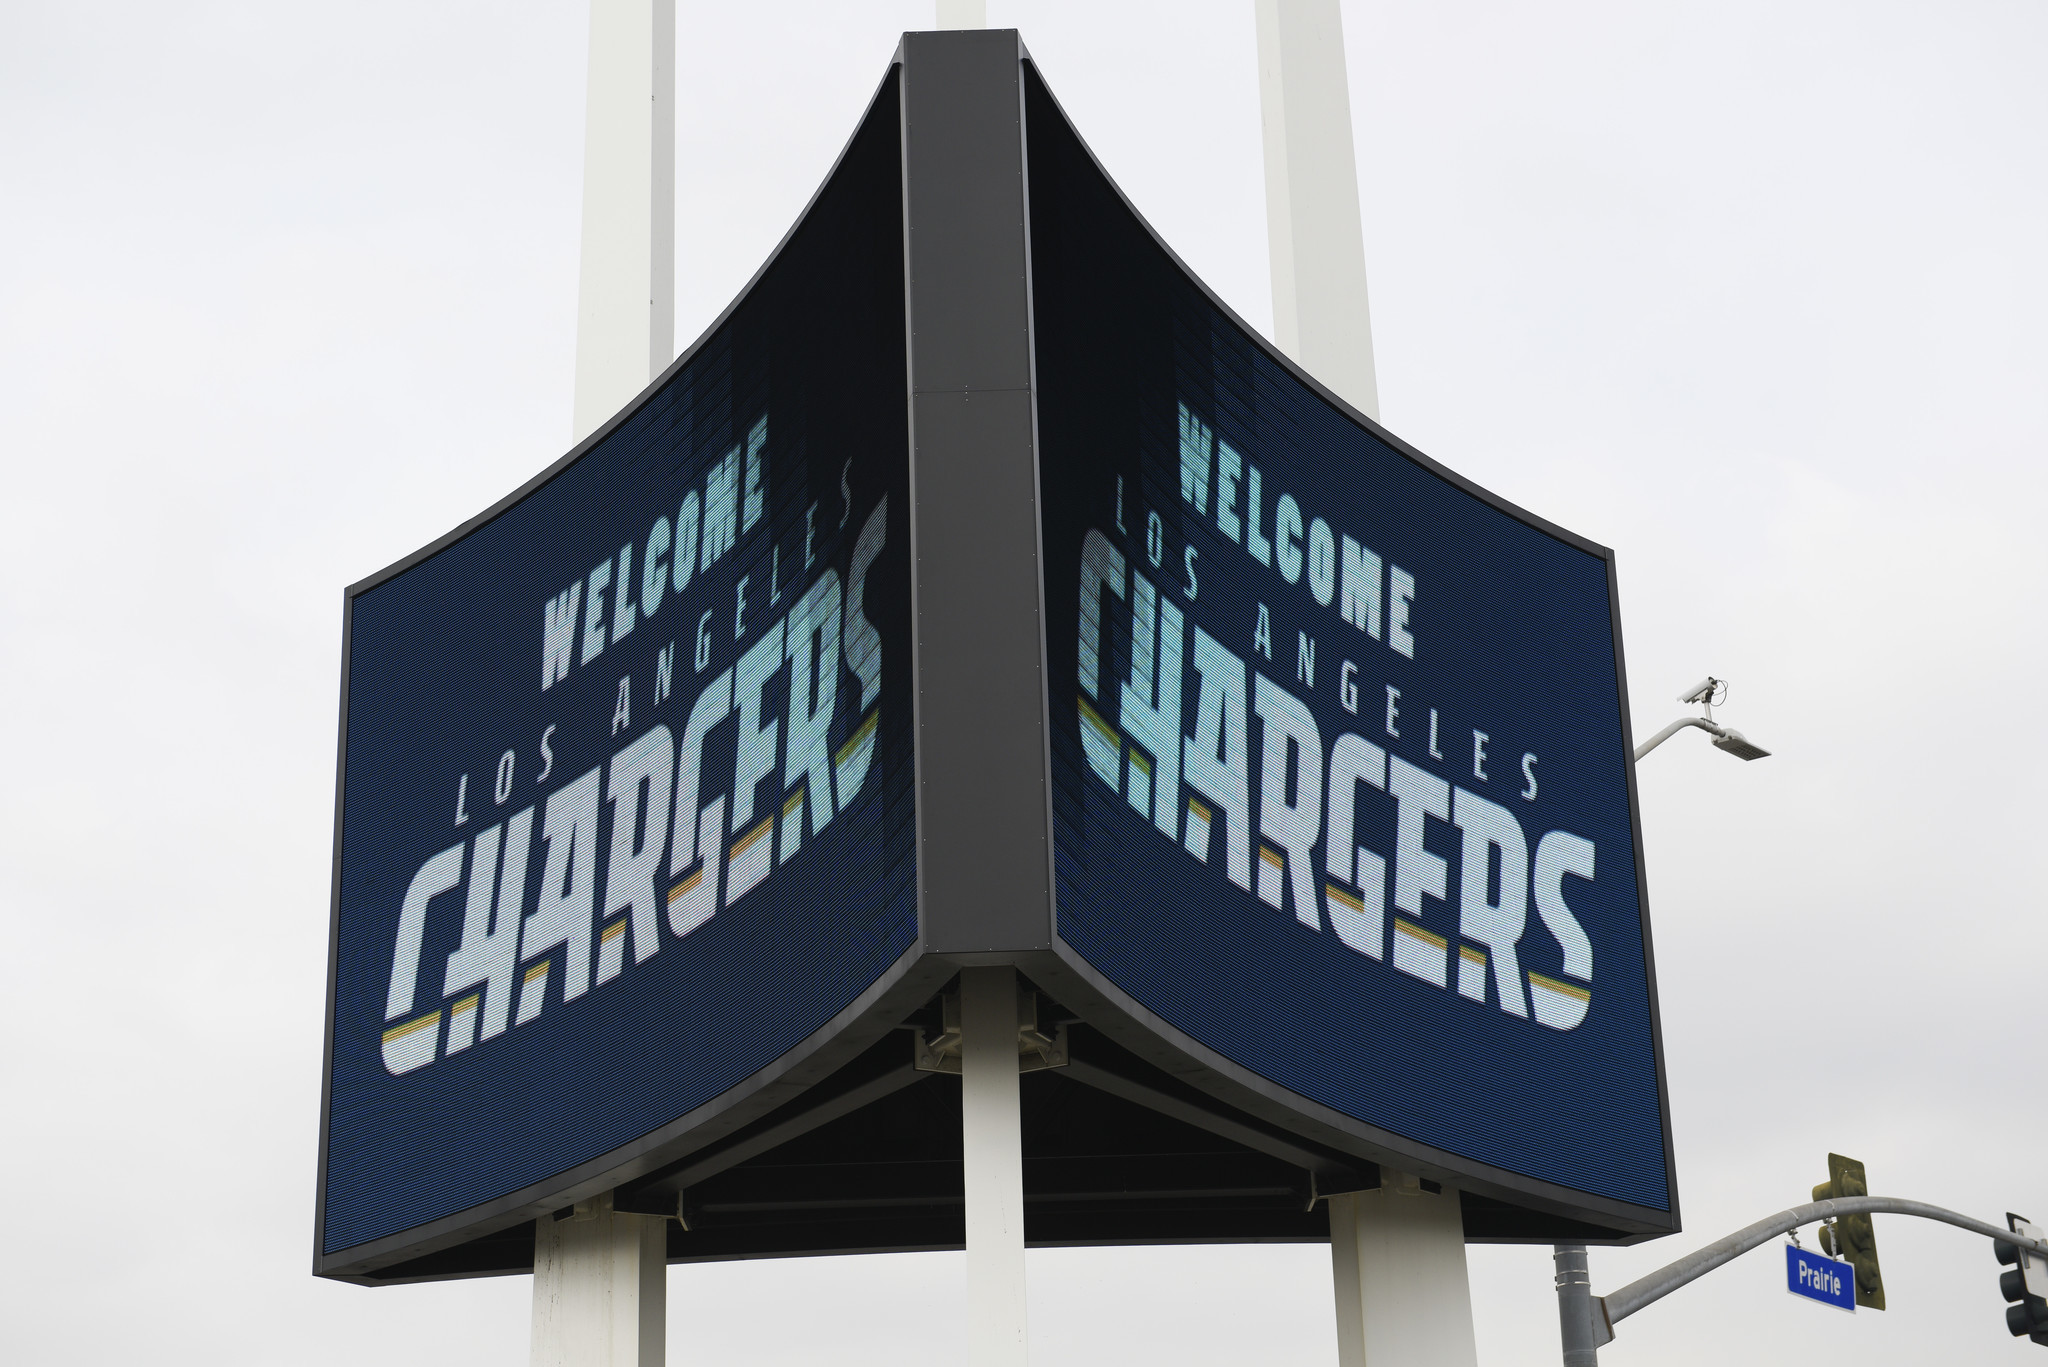 The NFL team that might move to San Diego